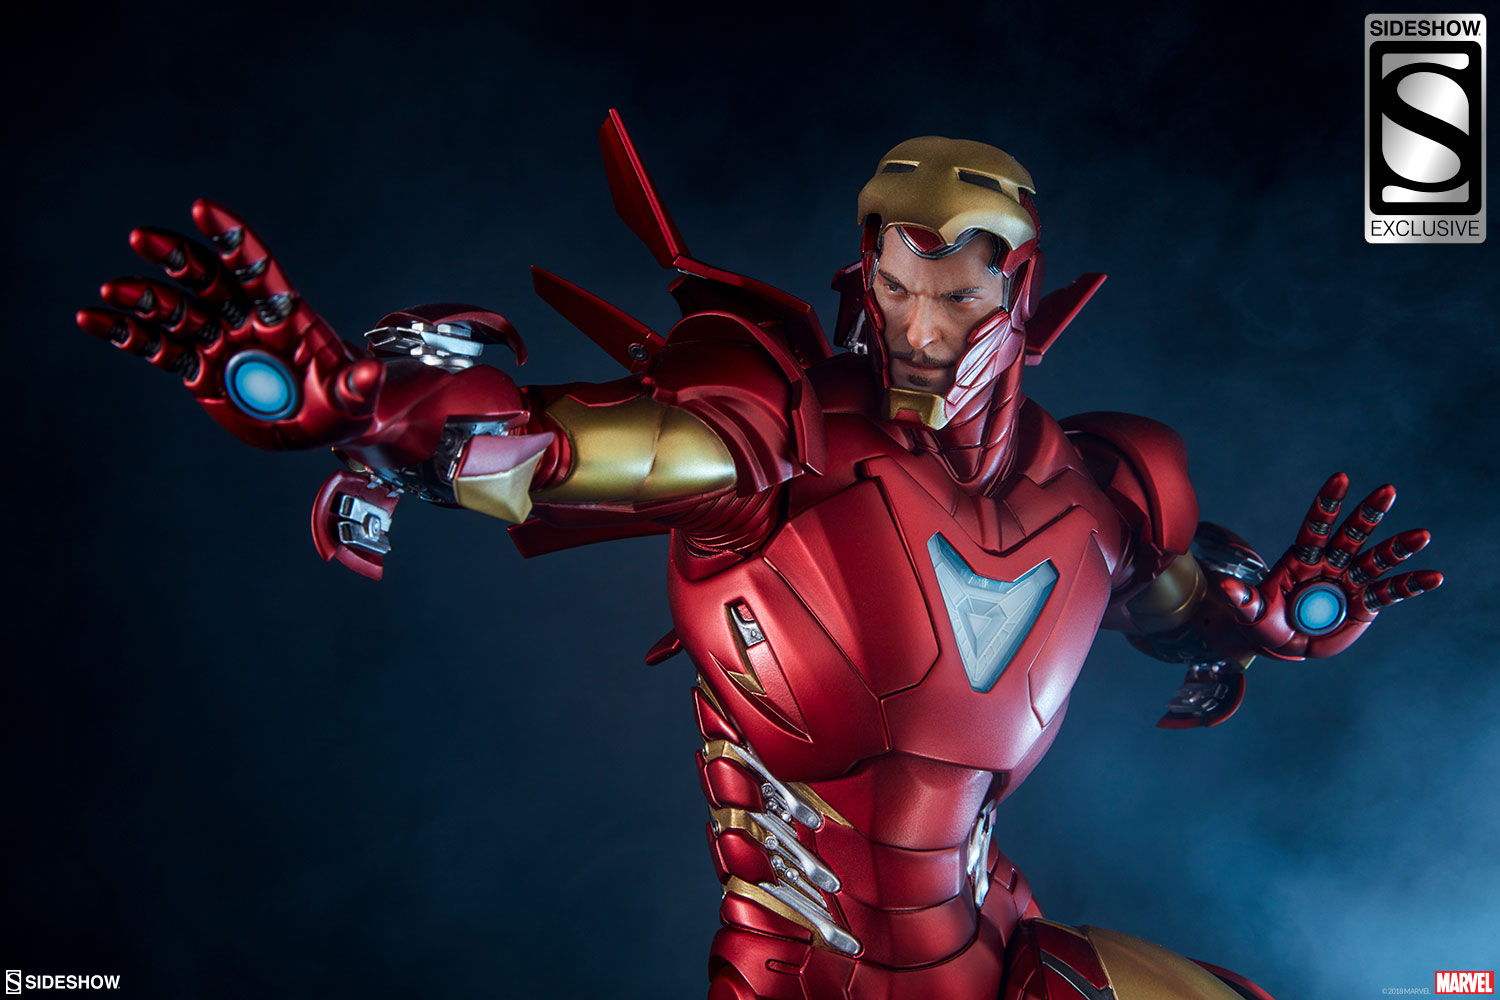 Sideshow Collectibles: Iron Man Extremis Mark 2 Statue Yolda!